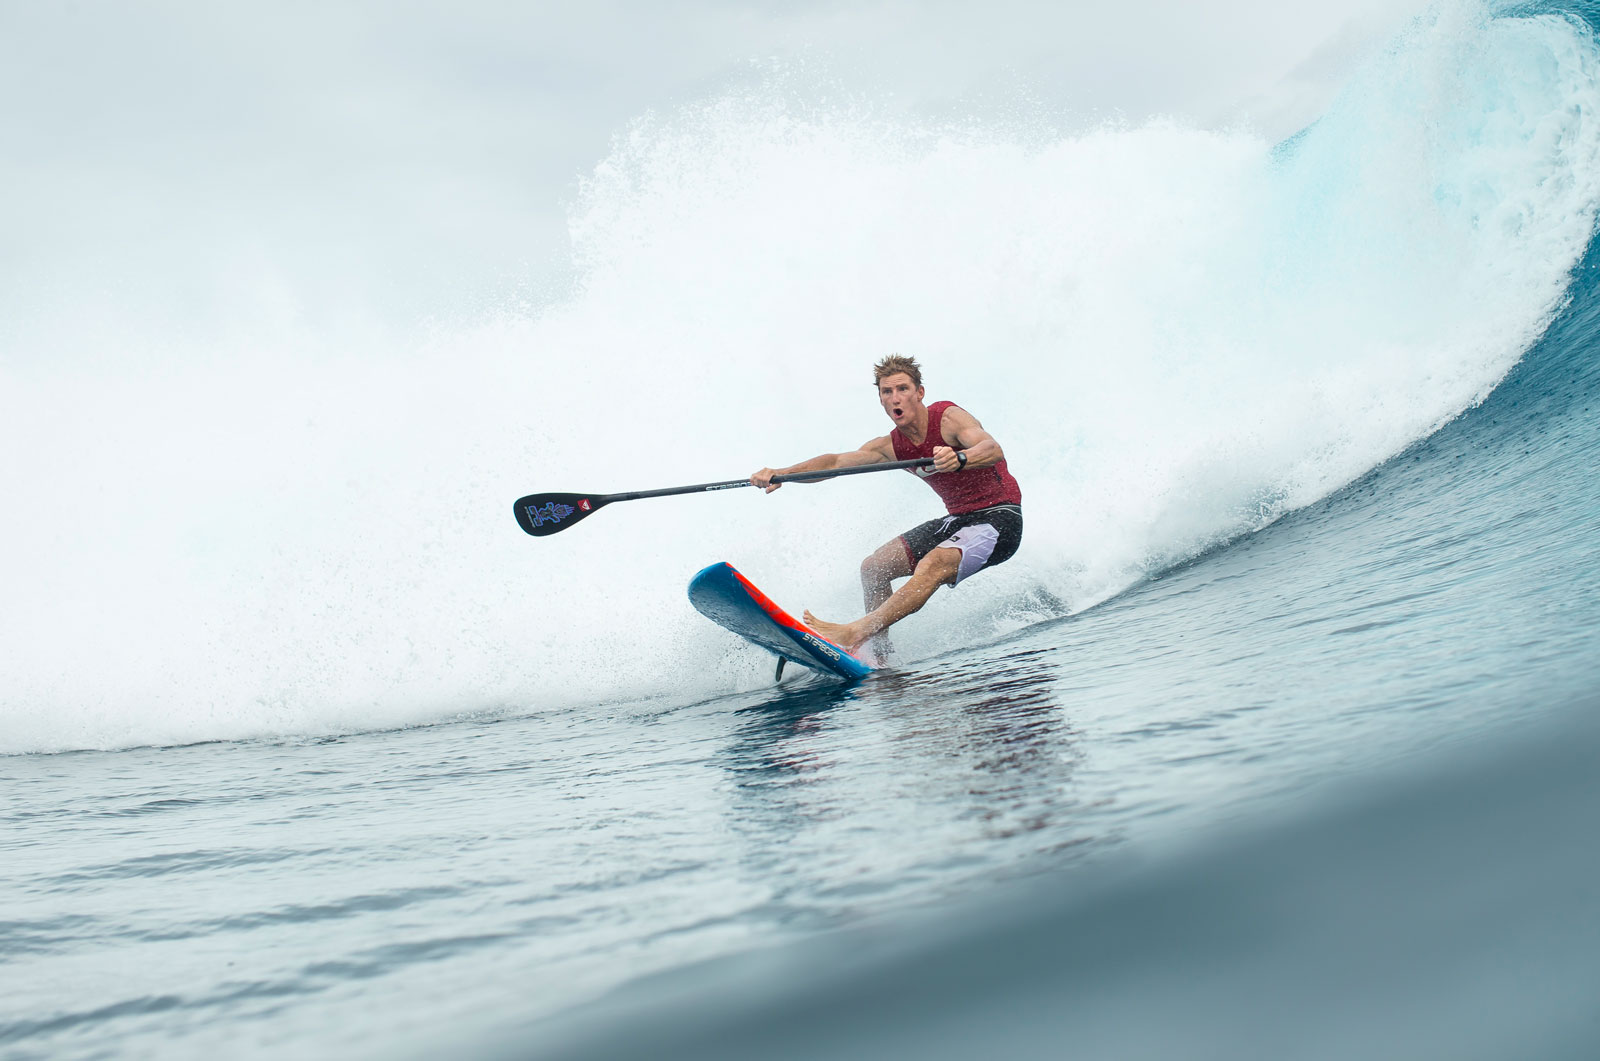 Blade Technology - Quelle: star-board-sup.com